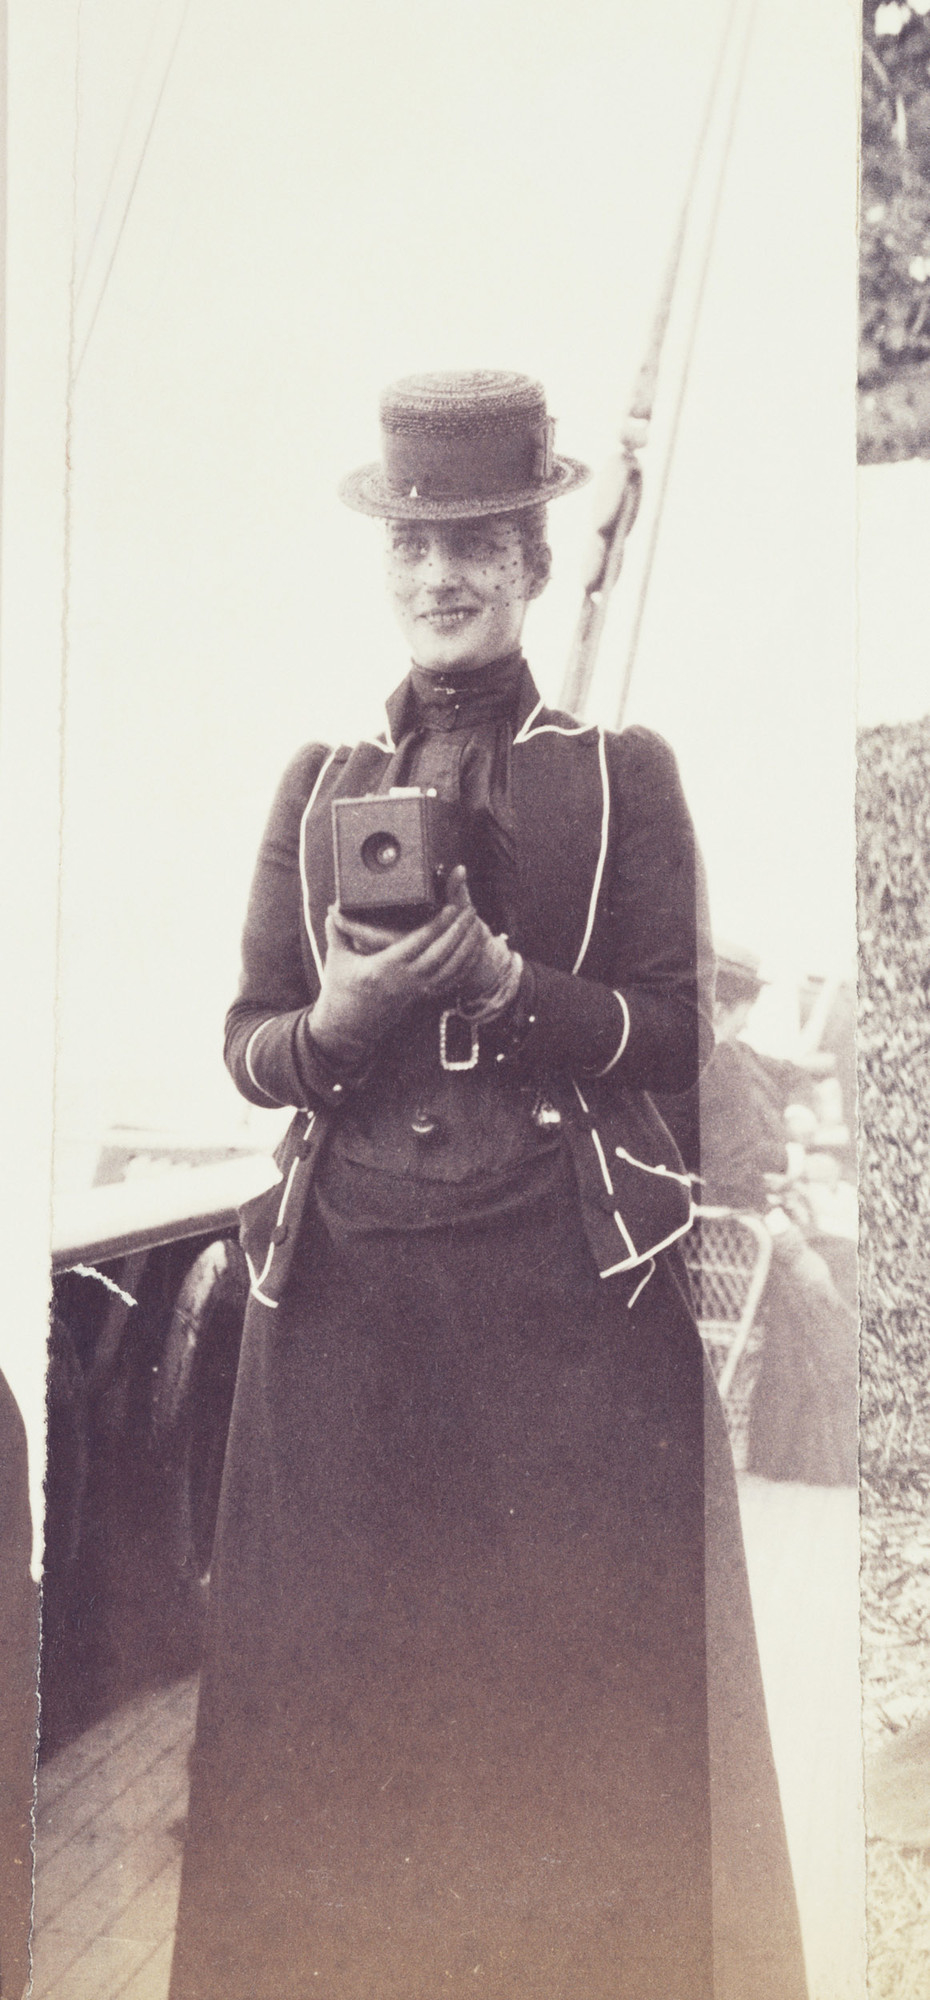 Photograph of the Princess of Wales, later Queen Alexandra, holding a No.1 Kodak camera at chest height. She is standing on the deck of a ship. The No.1 Kodak camera was introduced in 1889 andtook small circular photographs. There are many exa